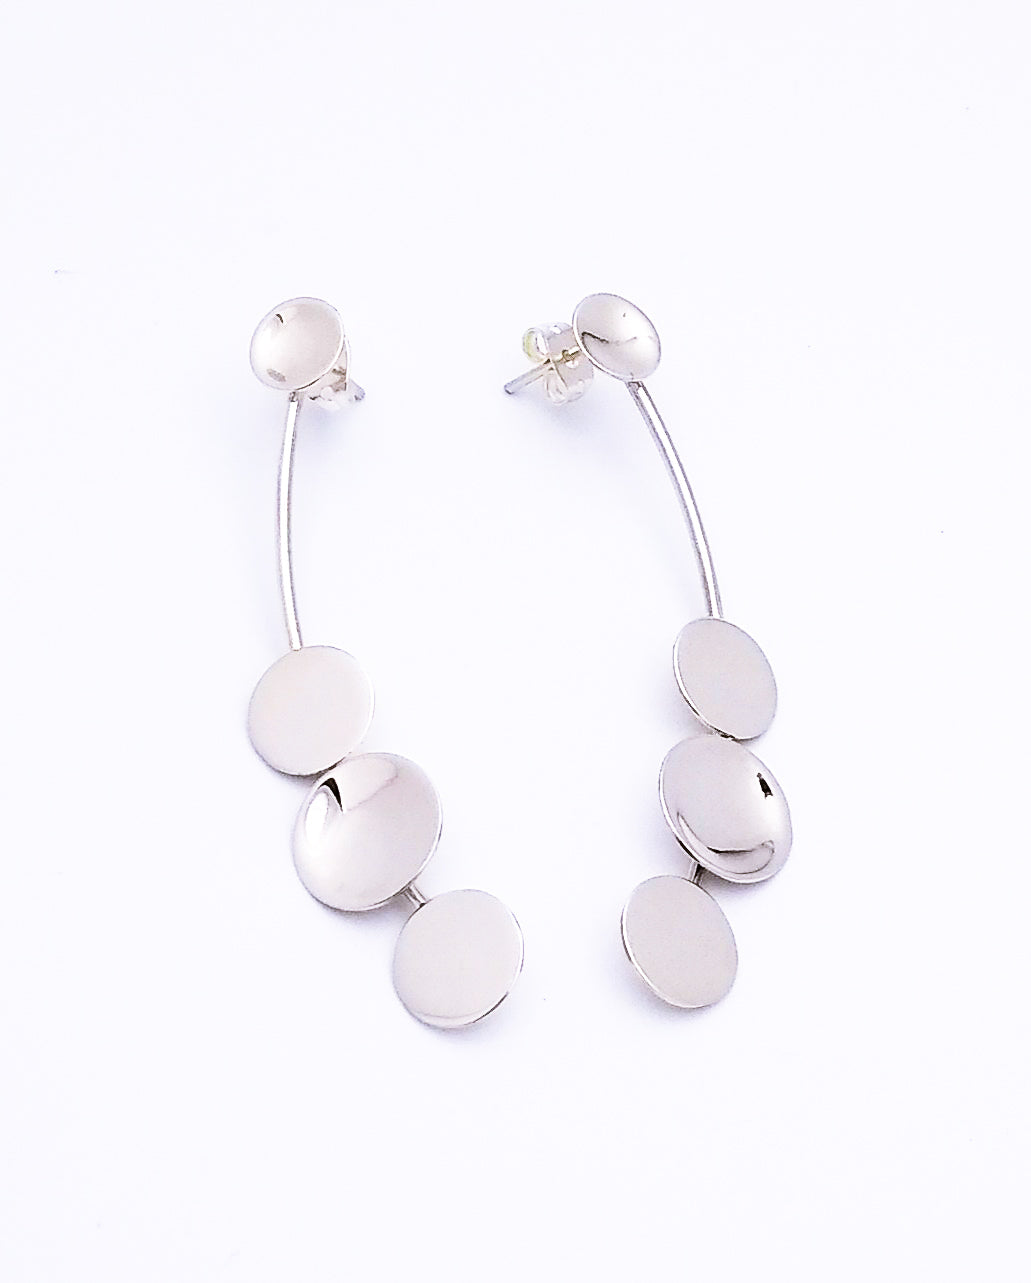 Long Sterling Silver Post Earrings With Discs